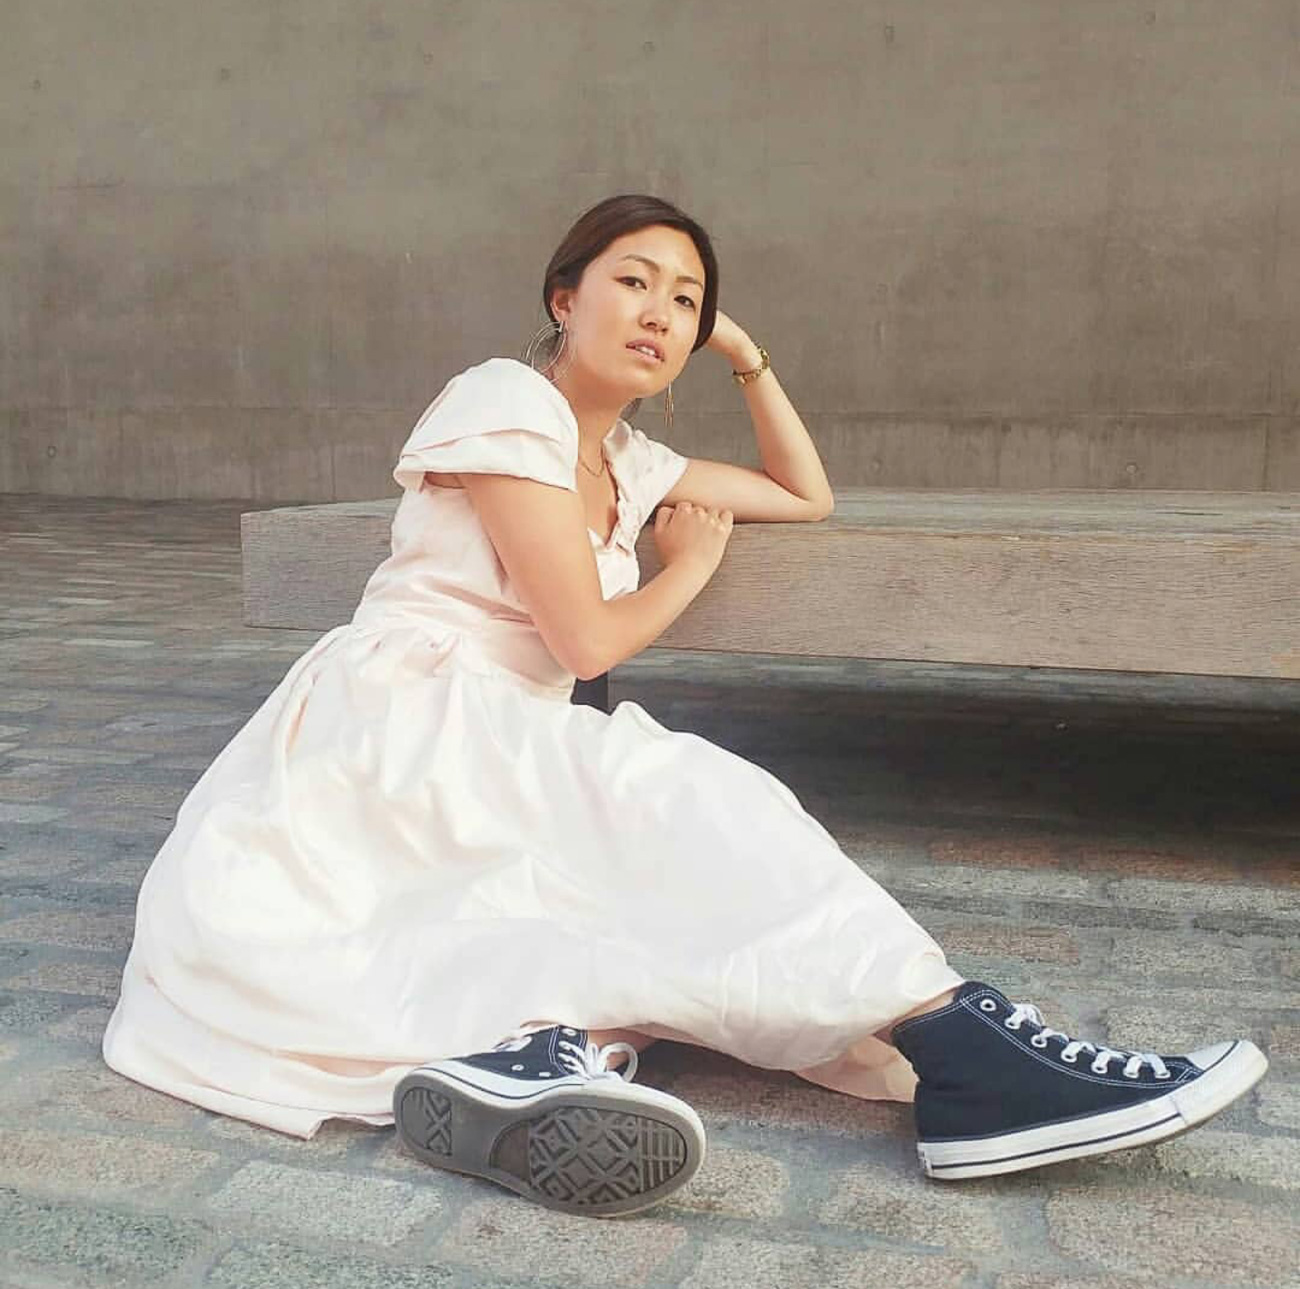 Queenie from Boutique by Shelter, Kings Cross, is wearing an unbranded vintage dress and her own Converse high-tops.